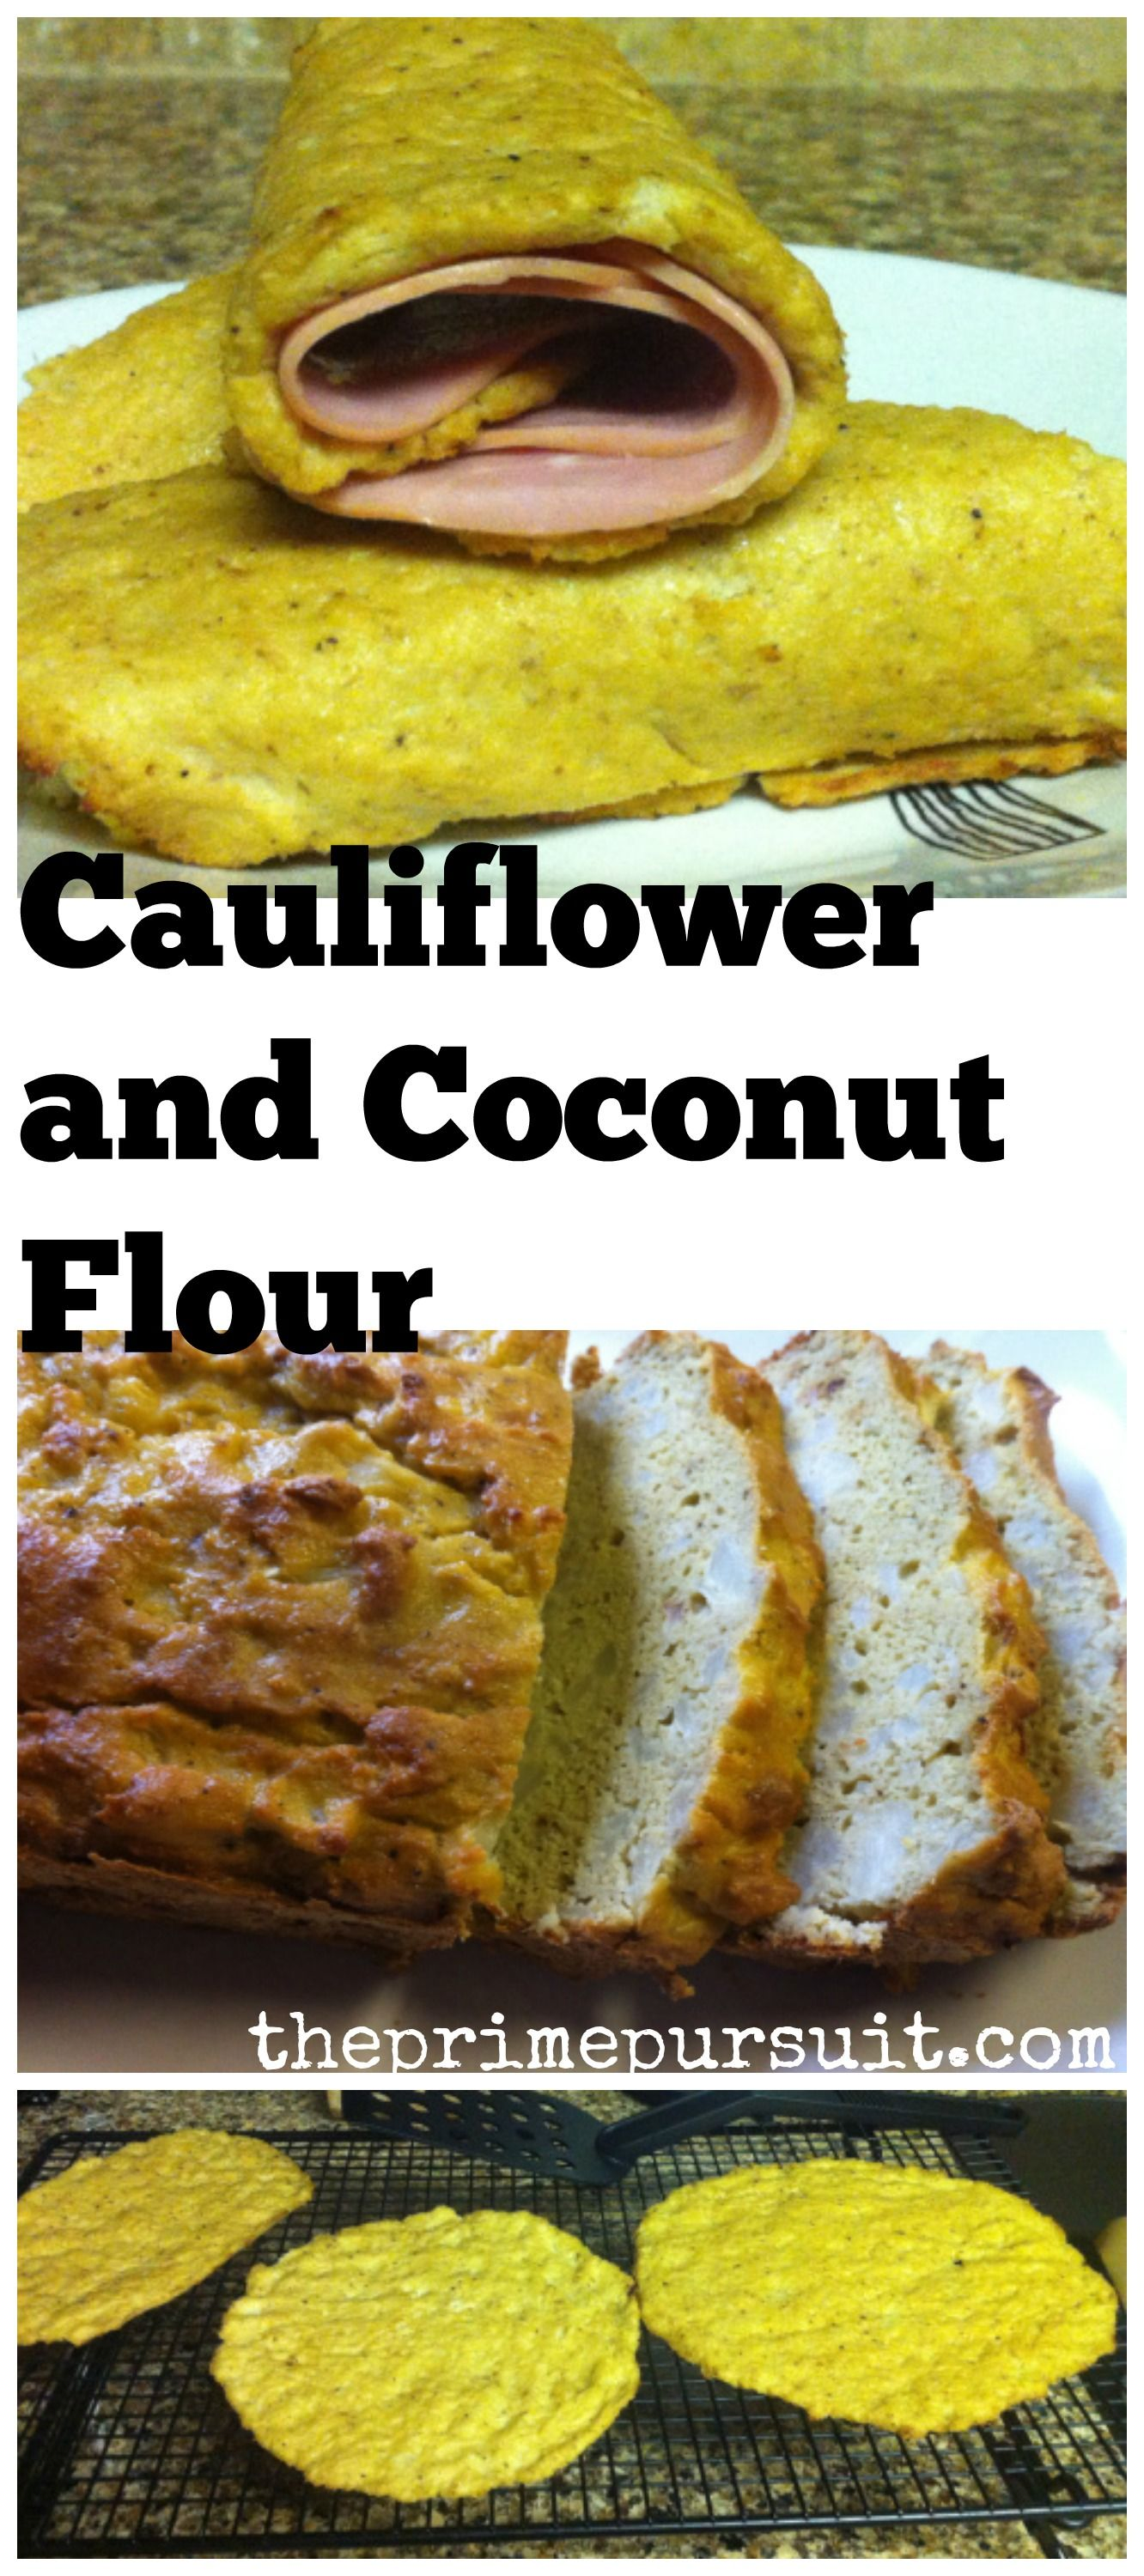 Cauliflower + Coconut flour to make bread and wraps ...